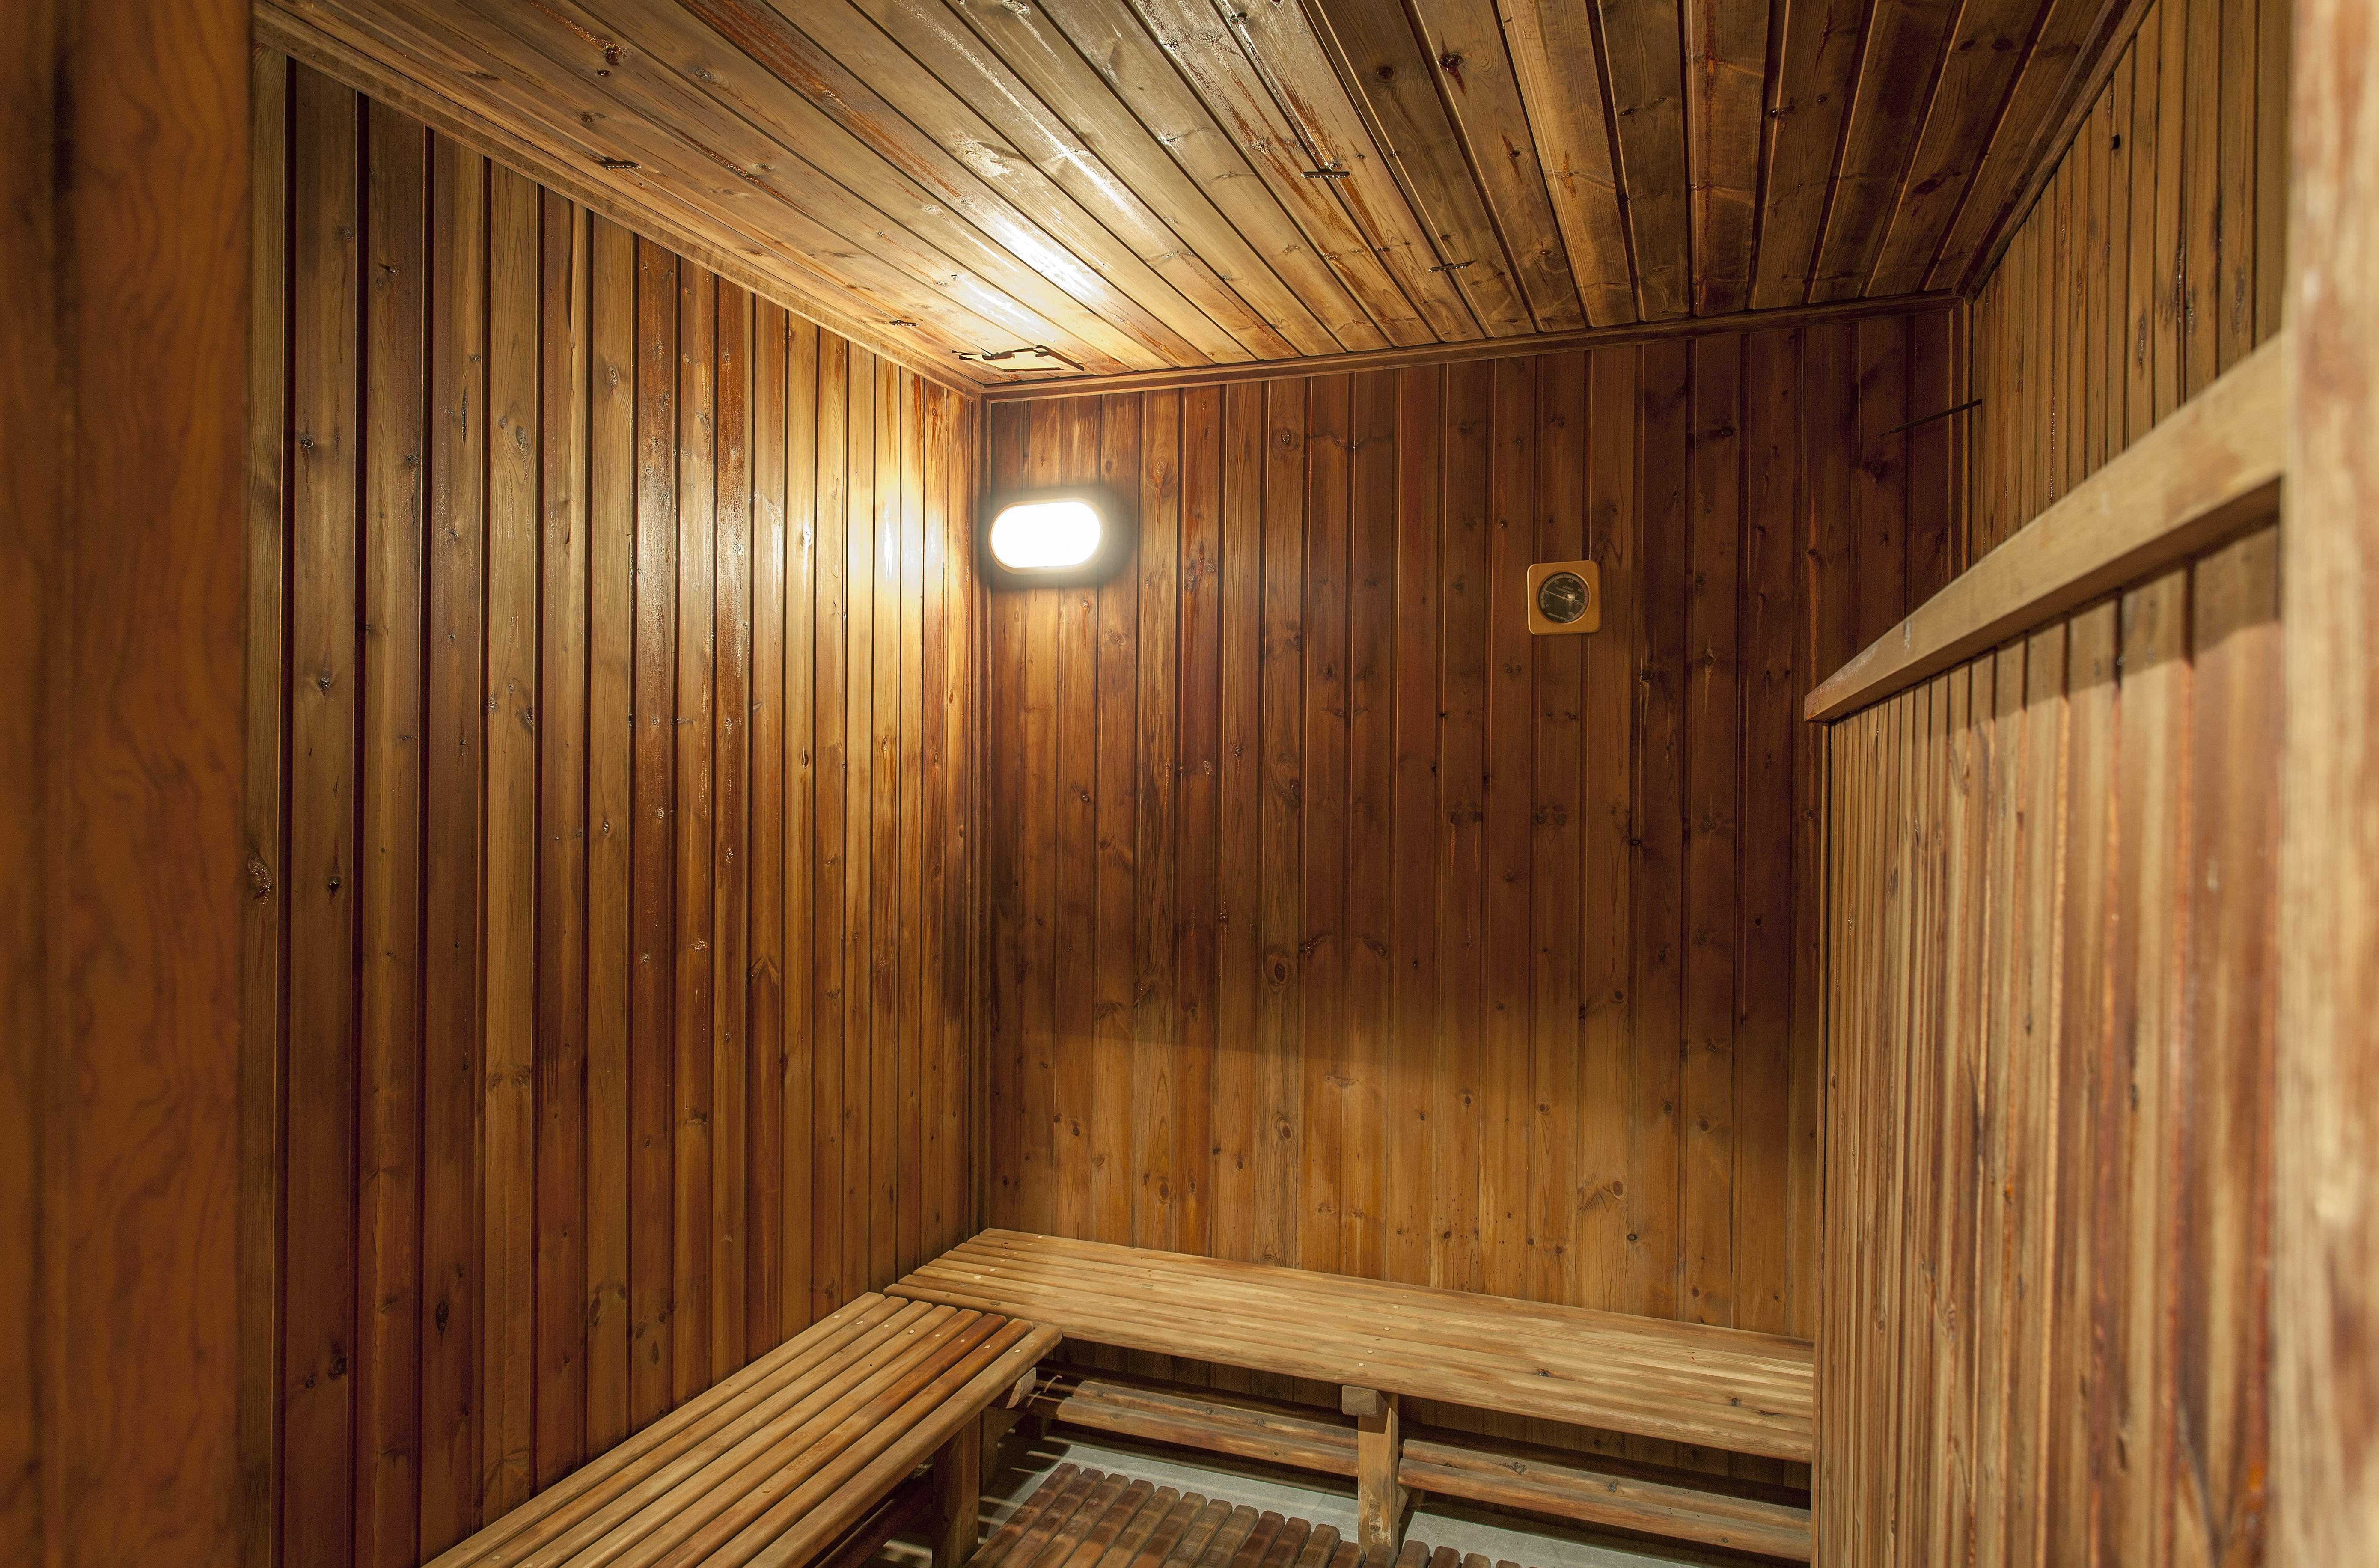 Spa with a sauna